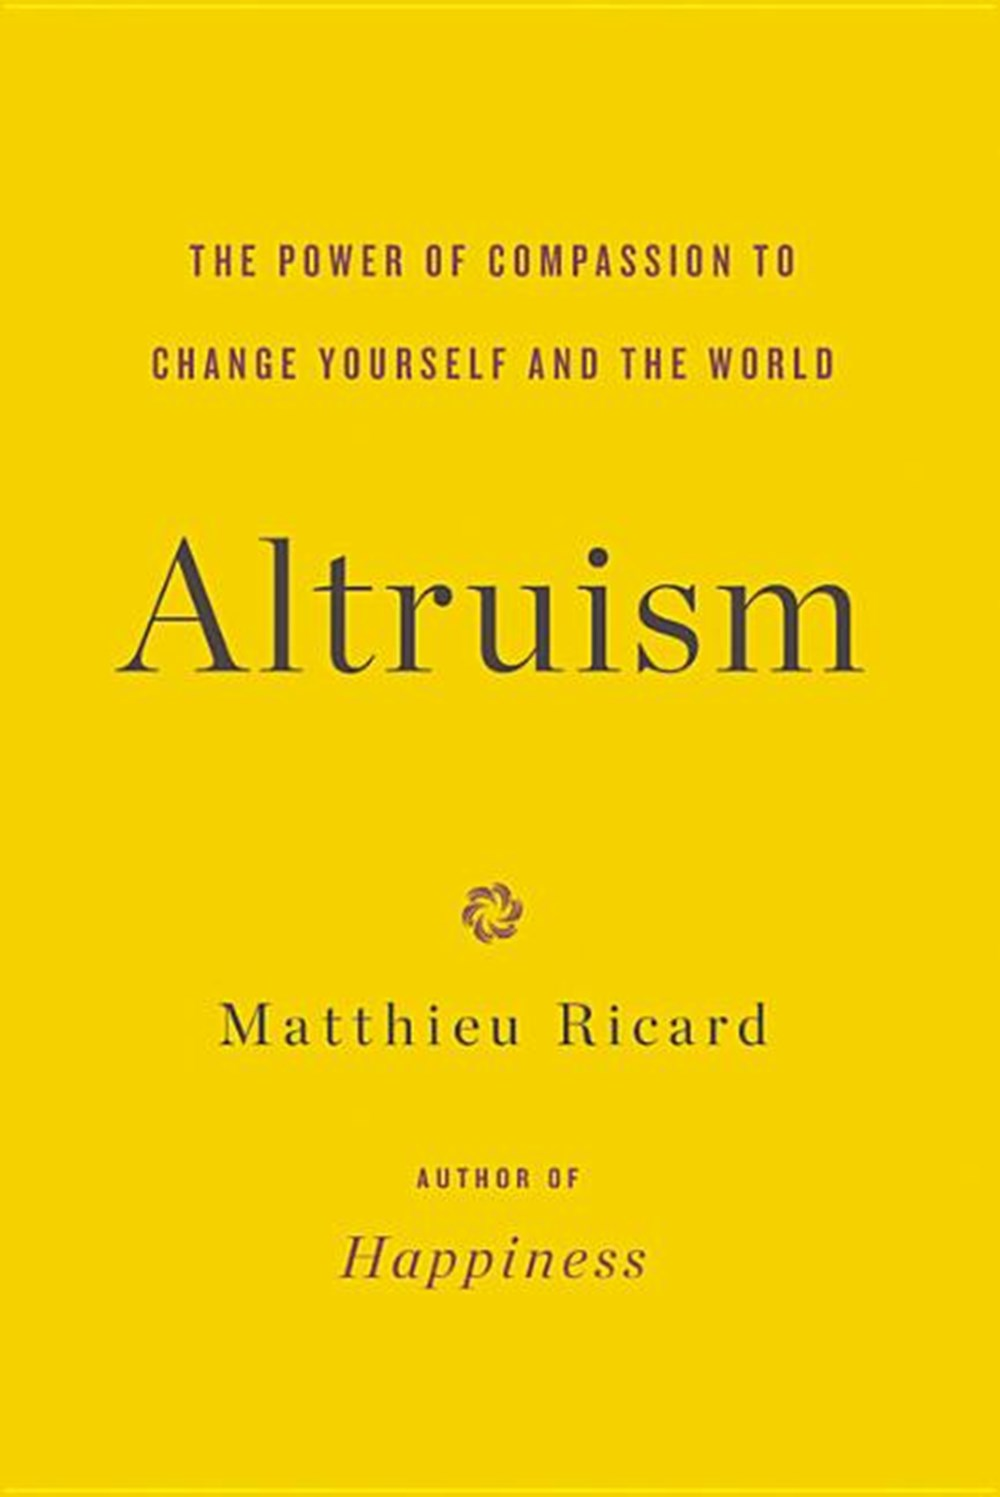 Altruism The Power of Compassion to Change Yourself and the World